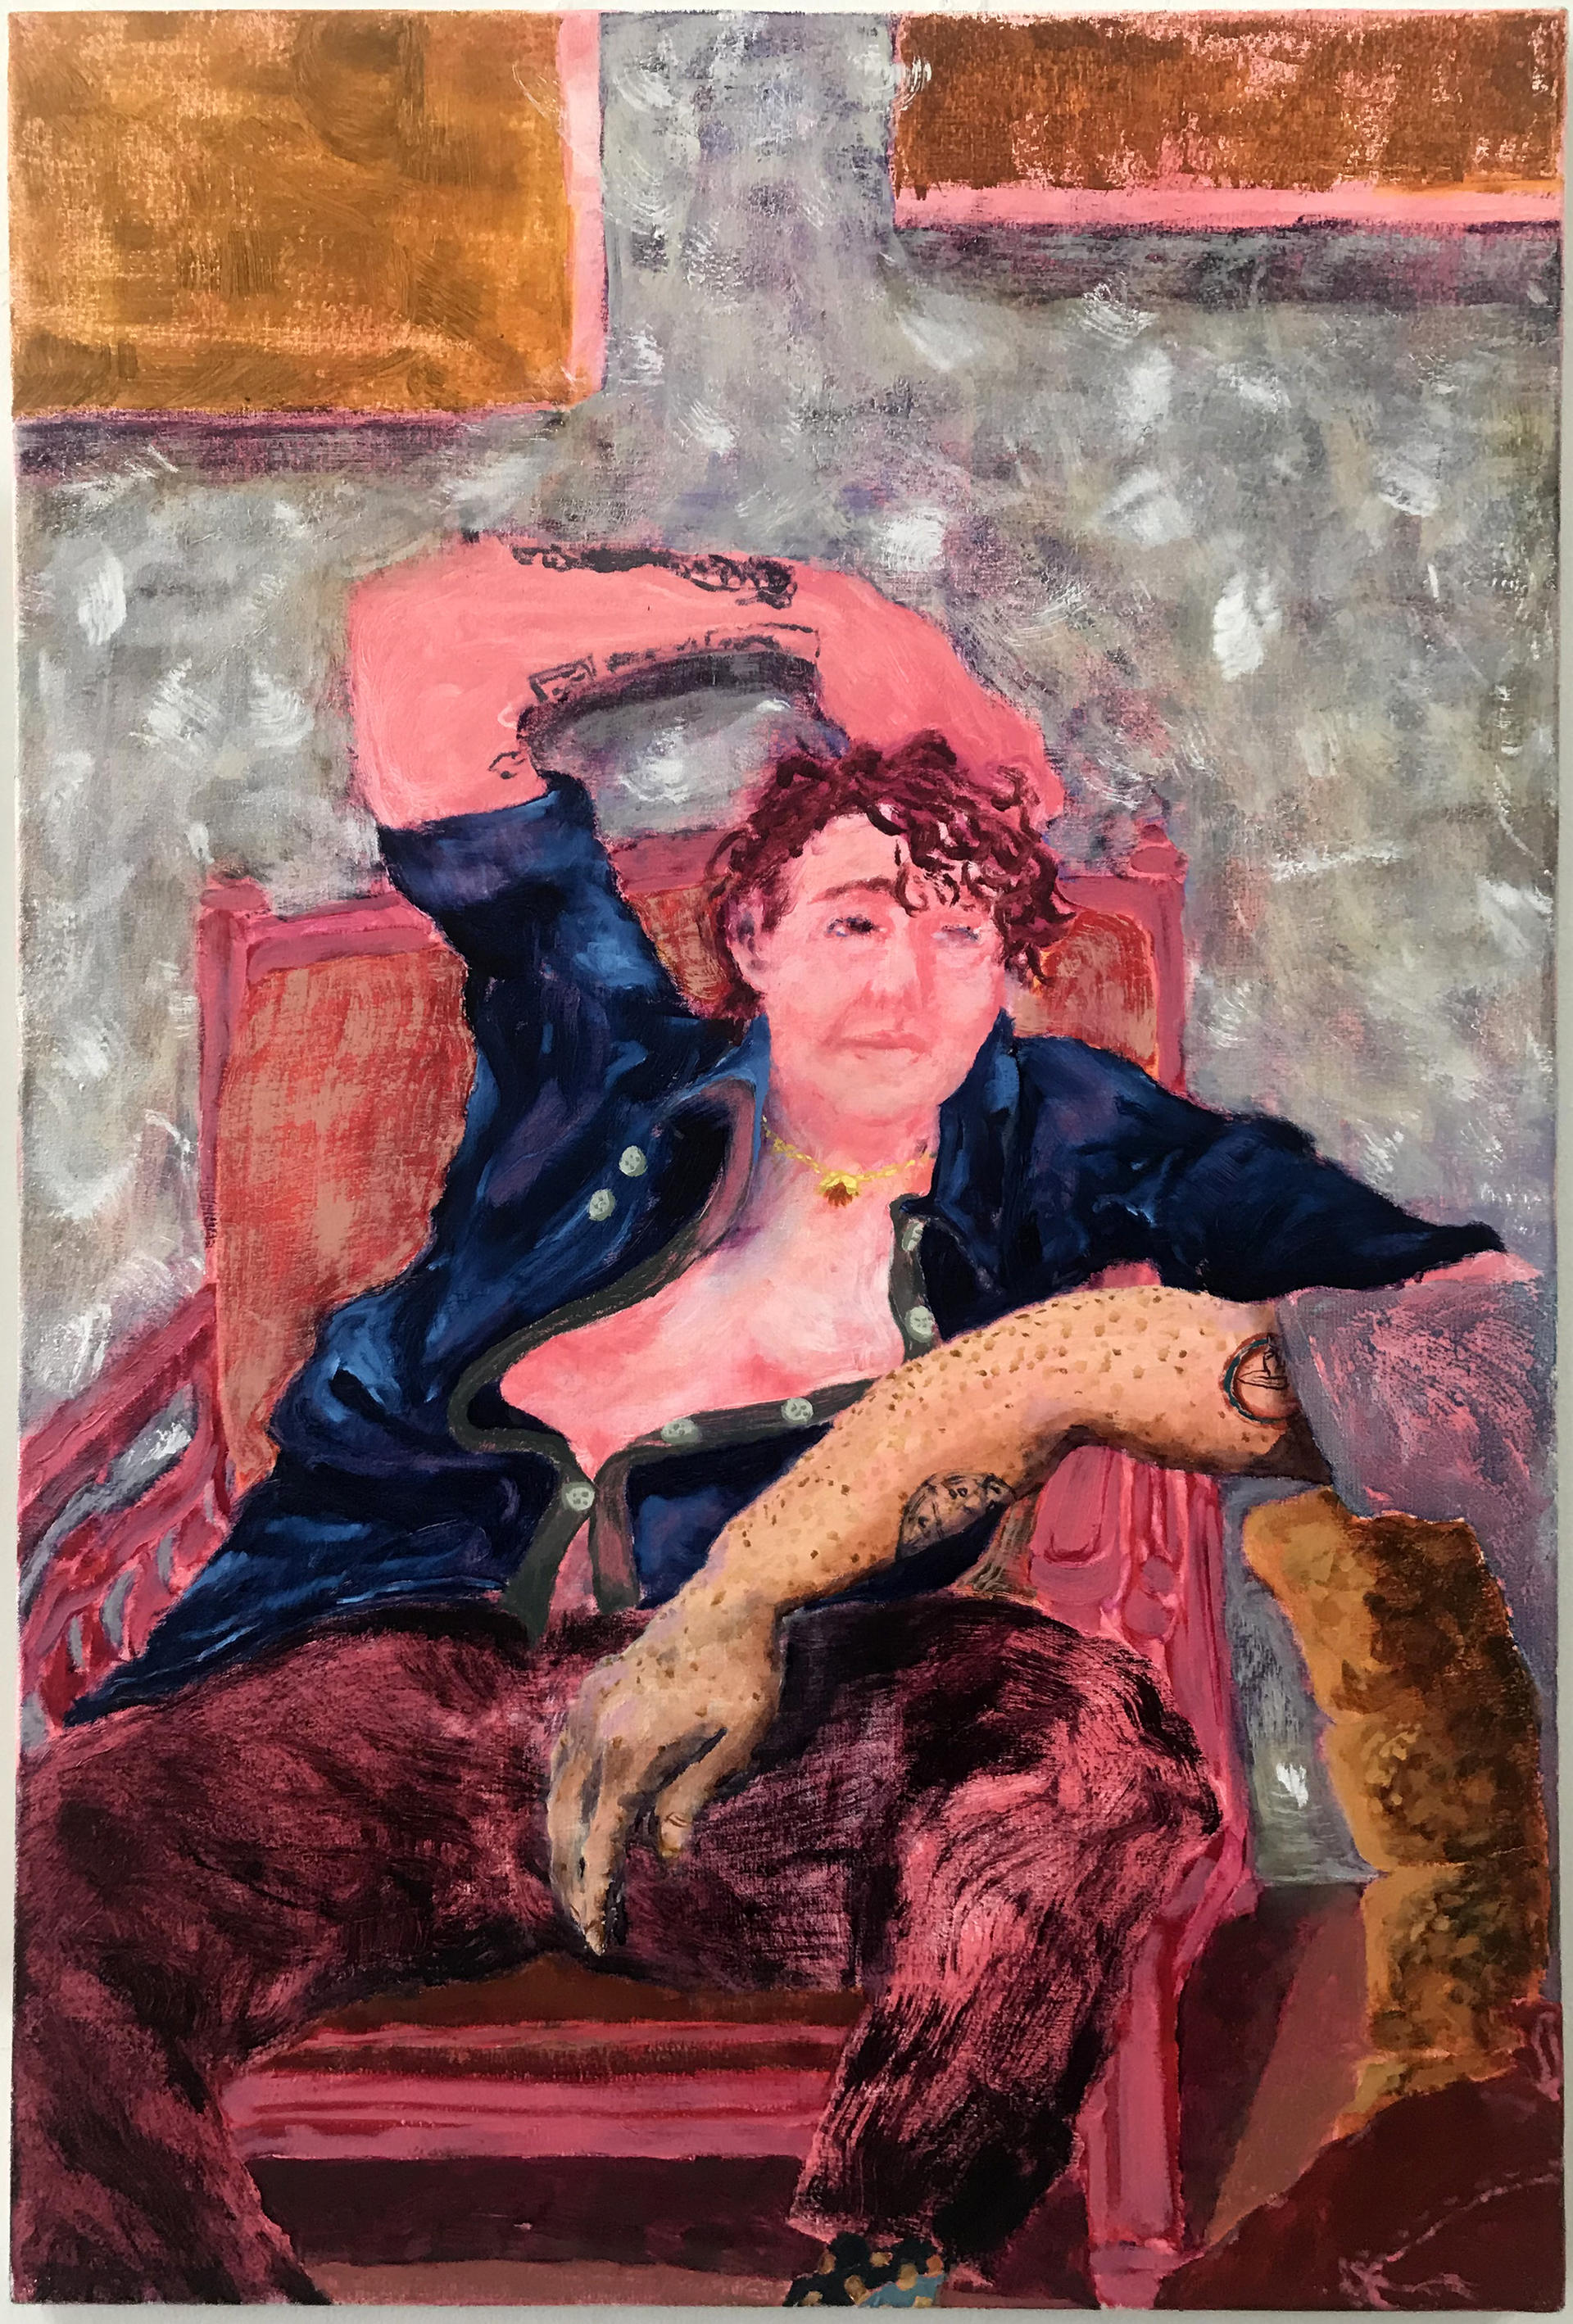 portrait of a person in a chair